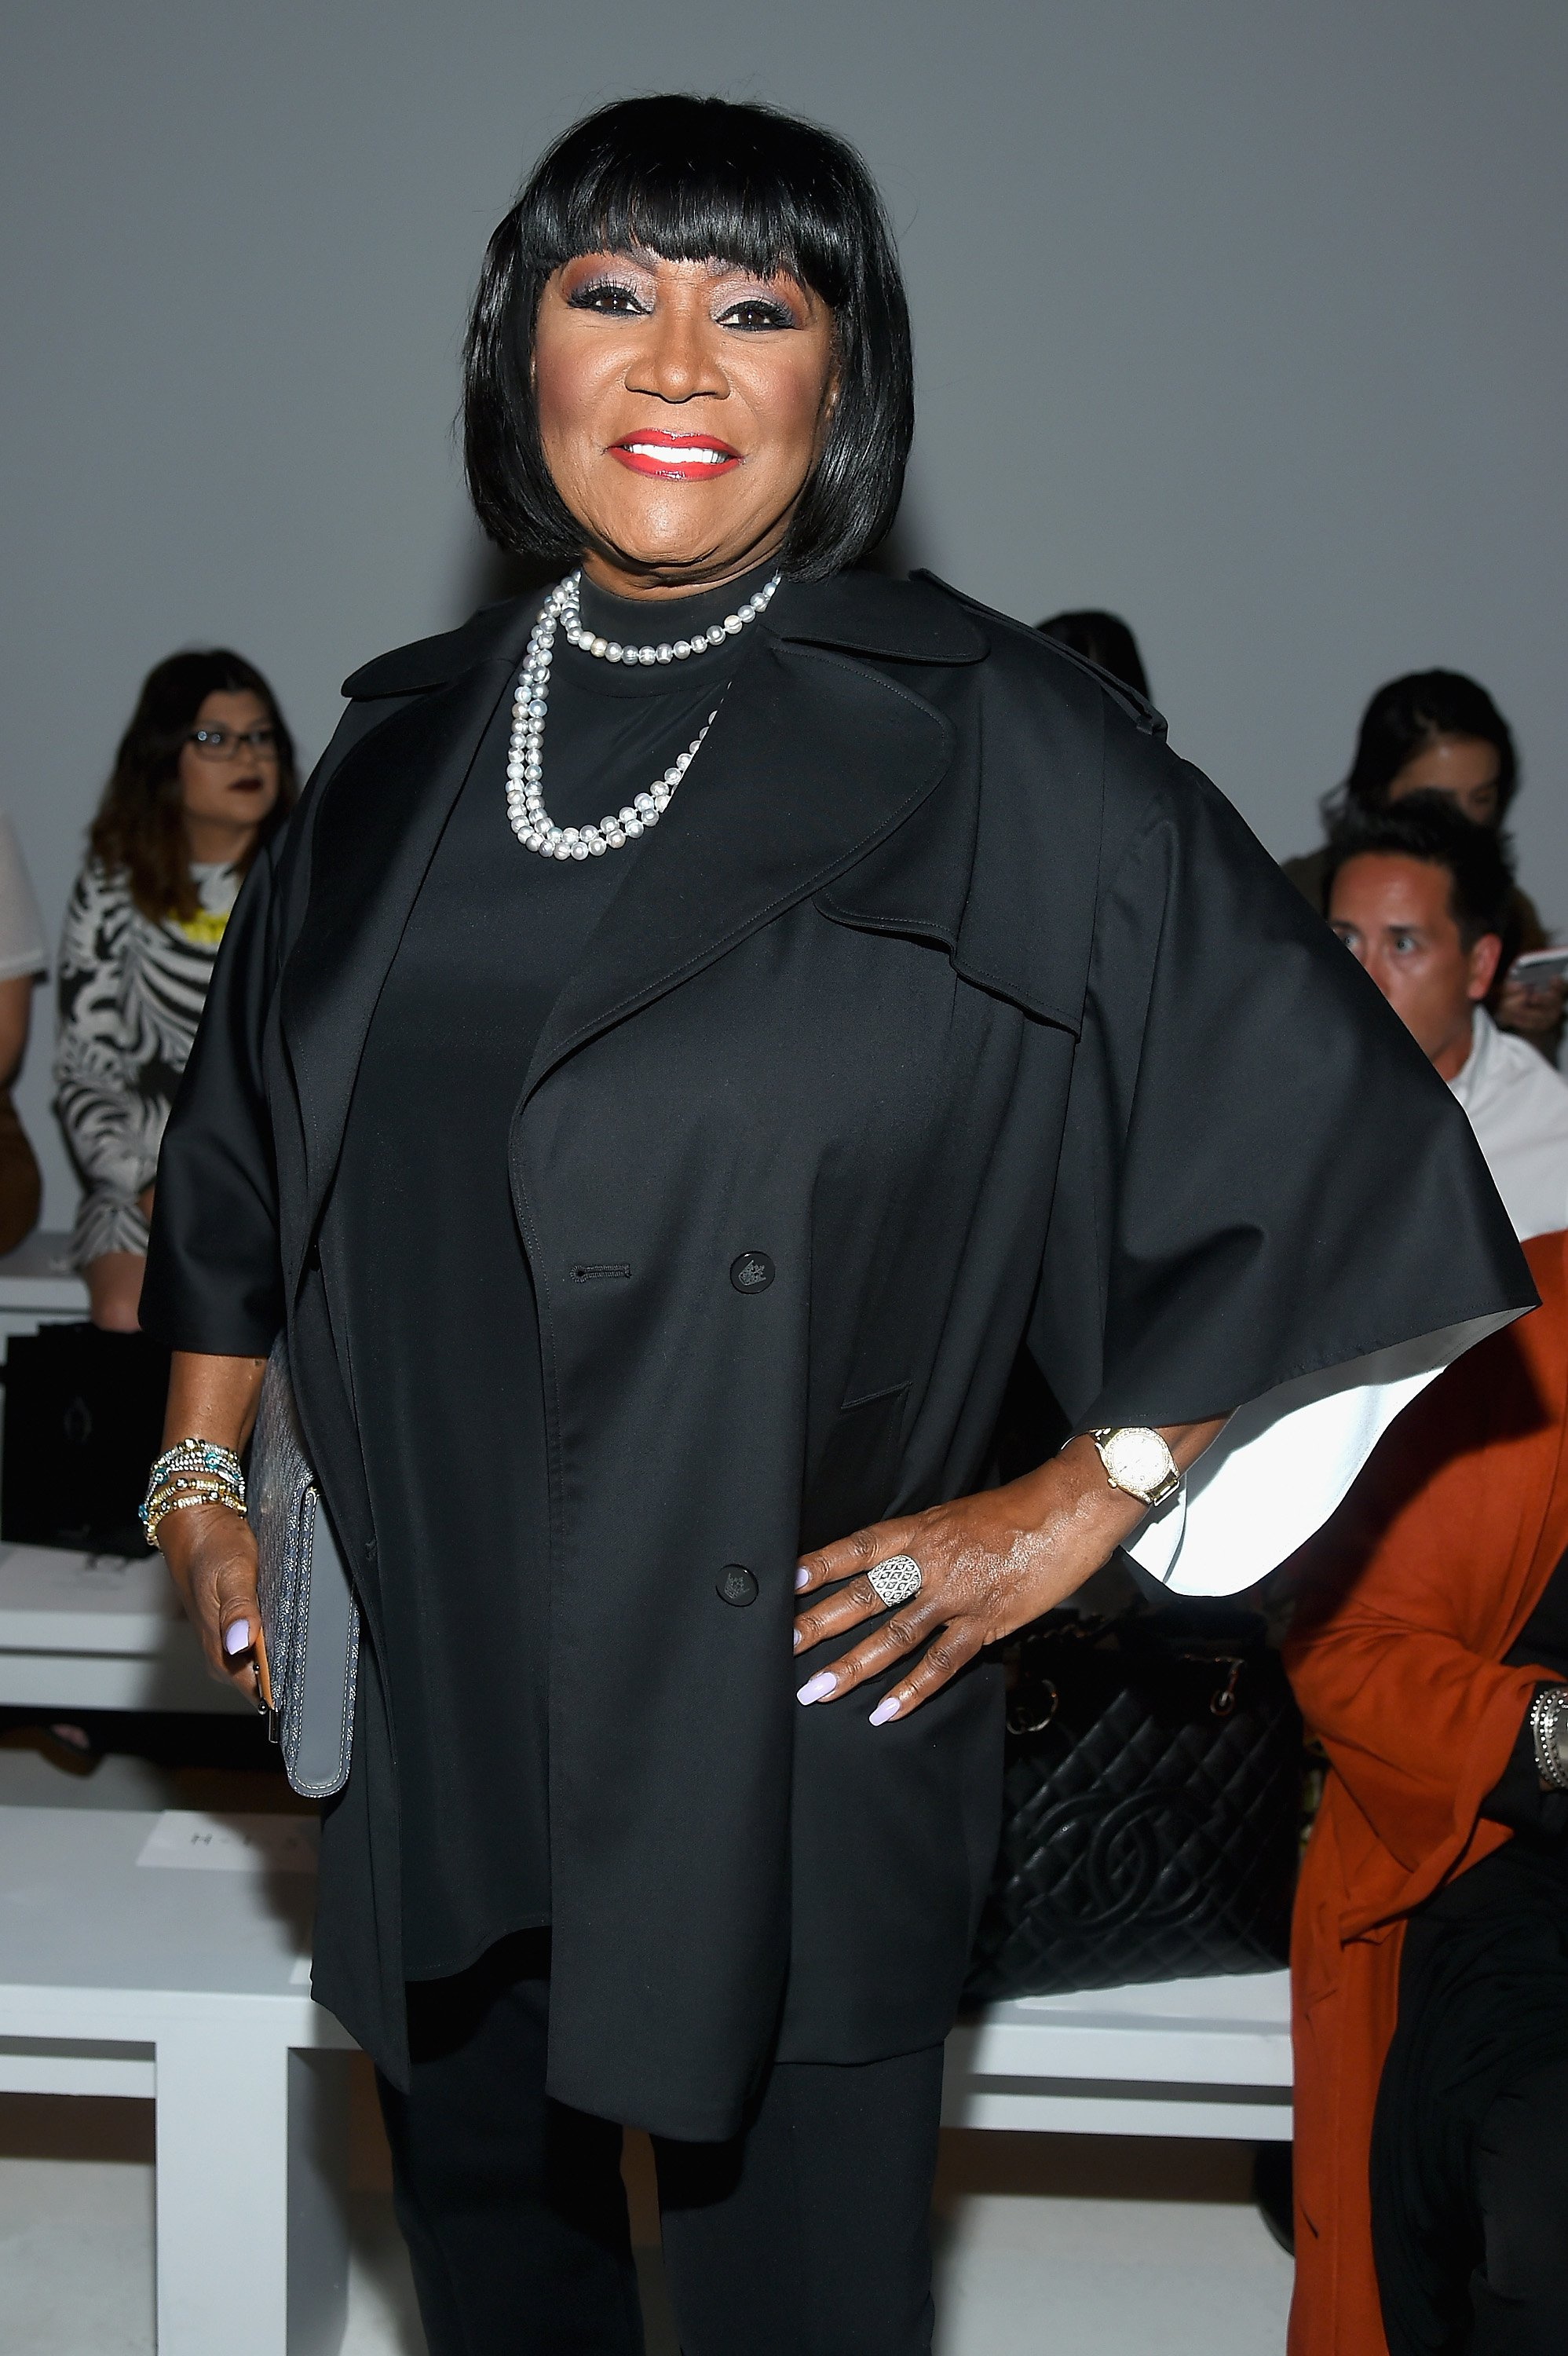 Patti LaBelle during New York Fashion Week on Sept. 13, 2017 in New York City | Photo: Getty Images